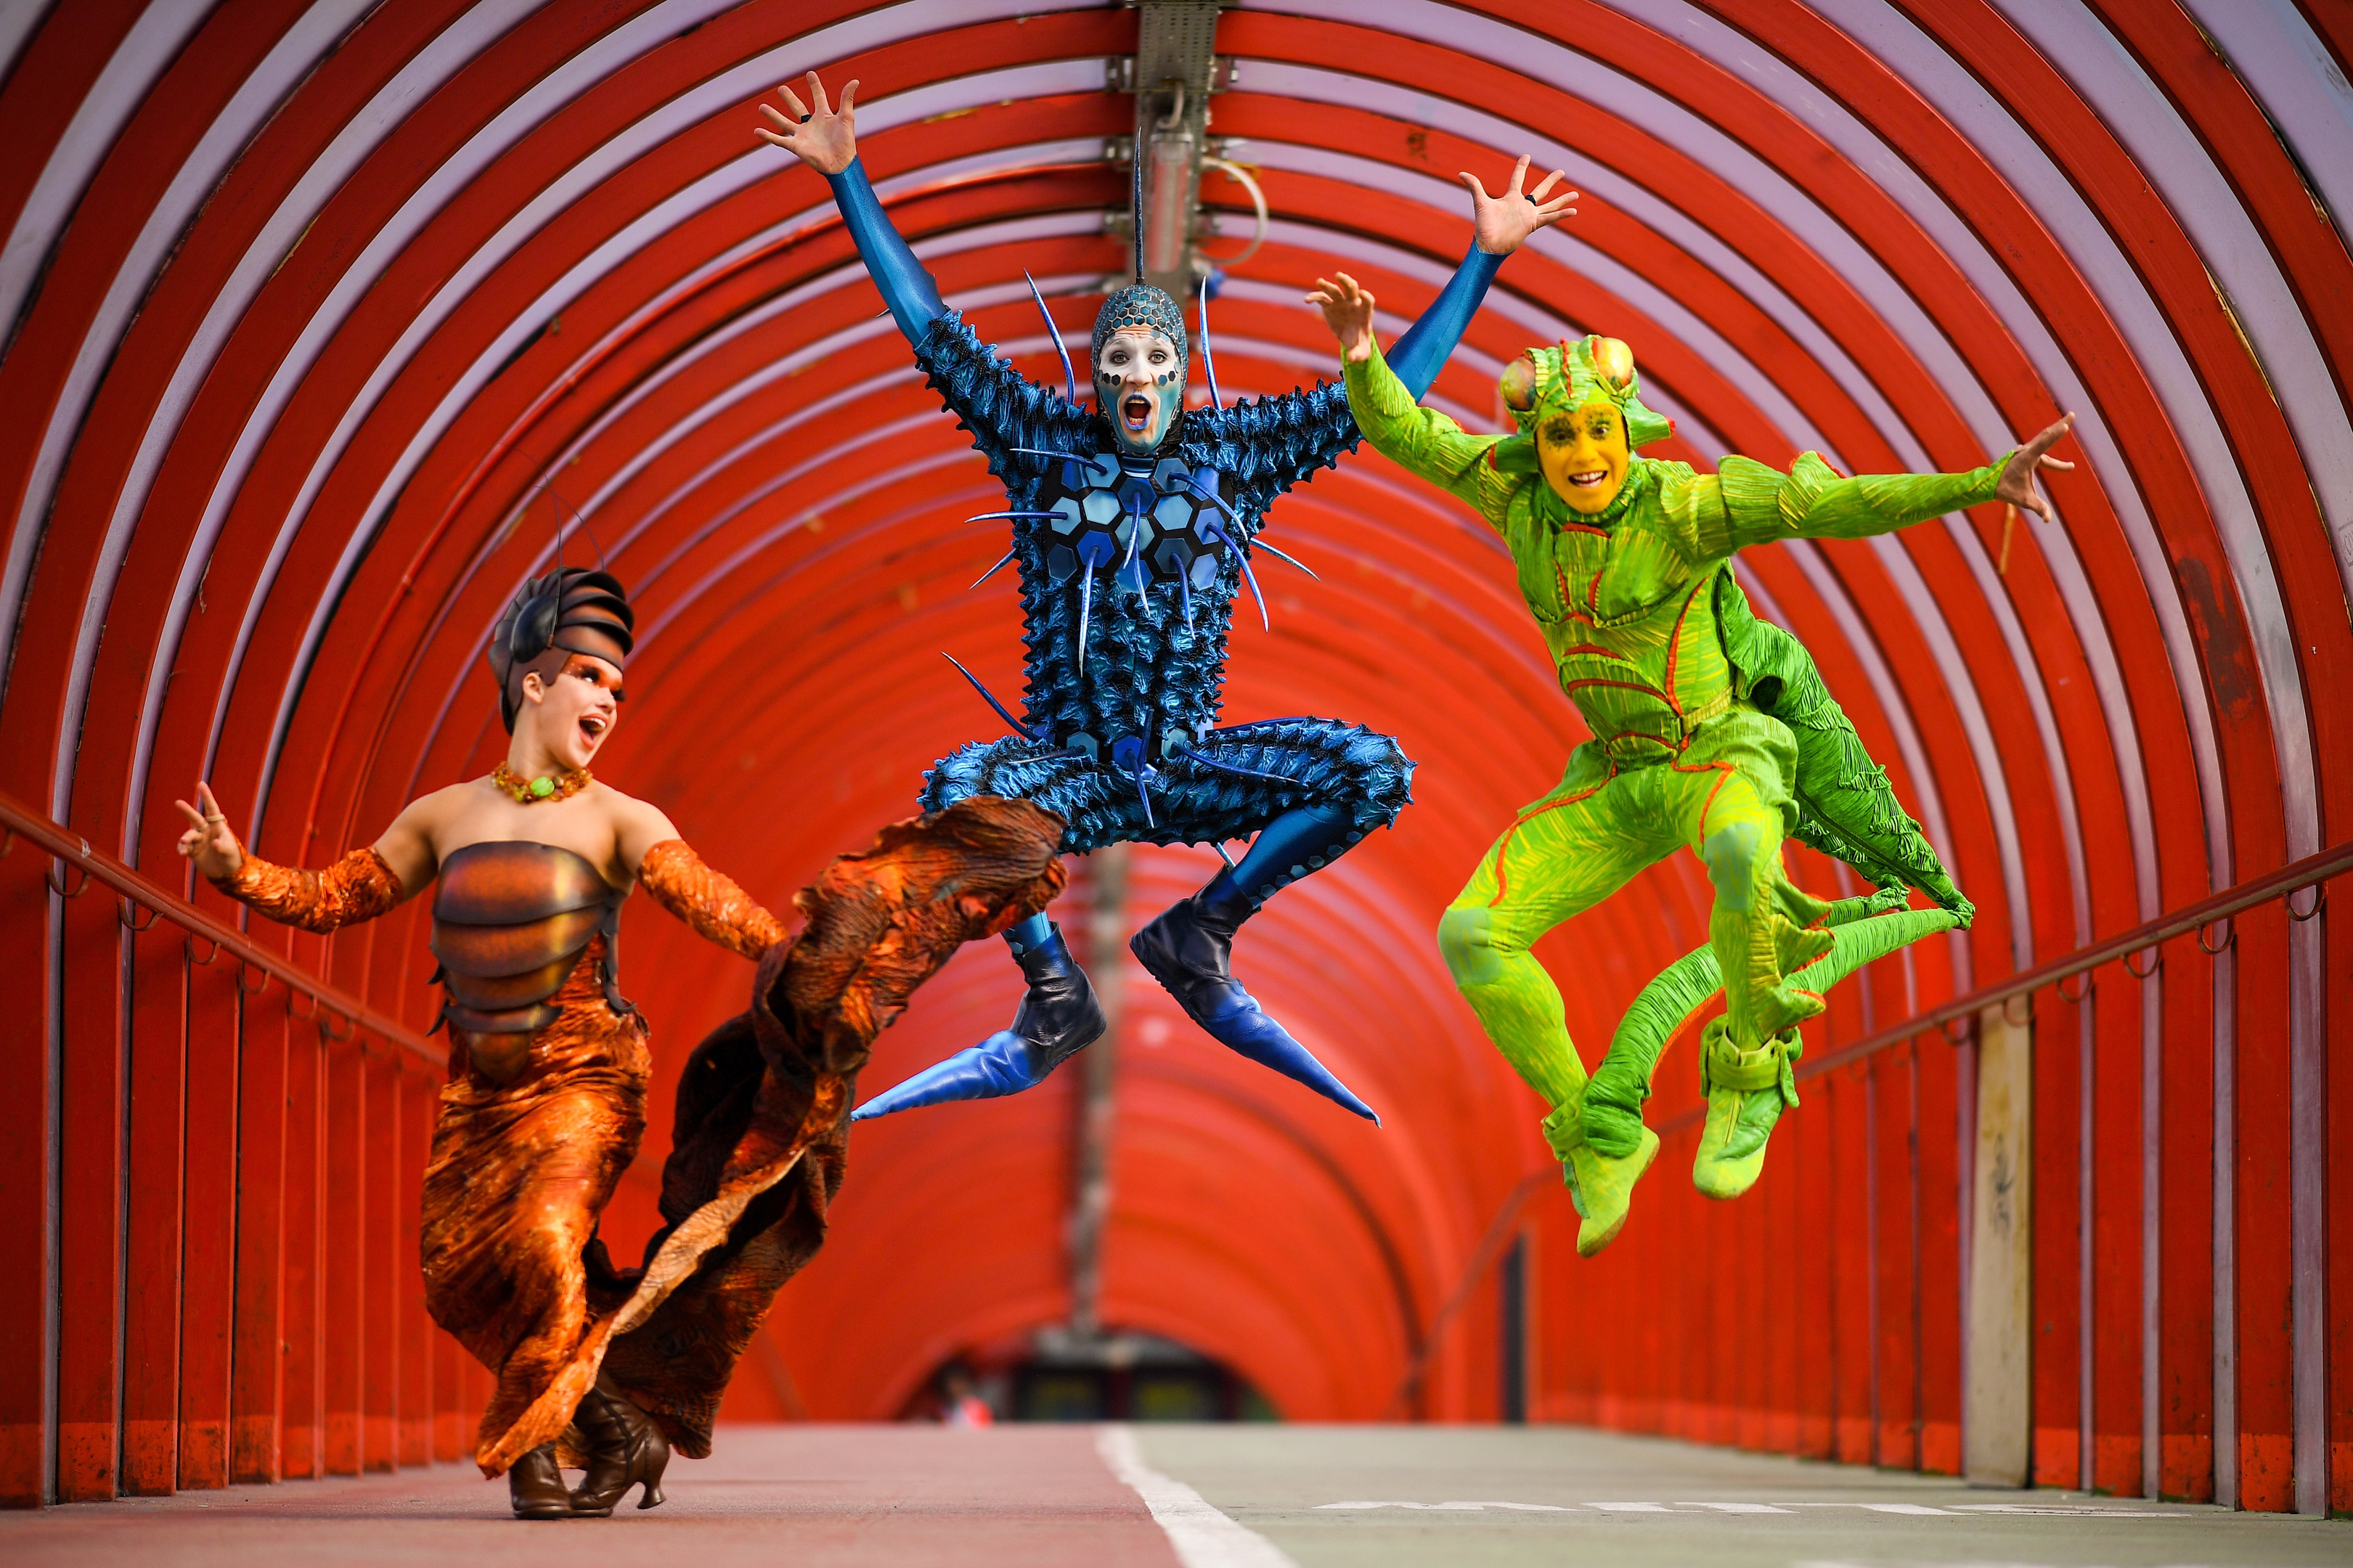 Cirque Du Soleil cast members Julia Tazie from Brazil, Jan Duther from Switzerland and Nathan Rivera-Drydak from Canada in the famous Exhibition Centre tunnel (Jeff J Mitchell/Getty Images)